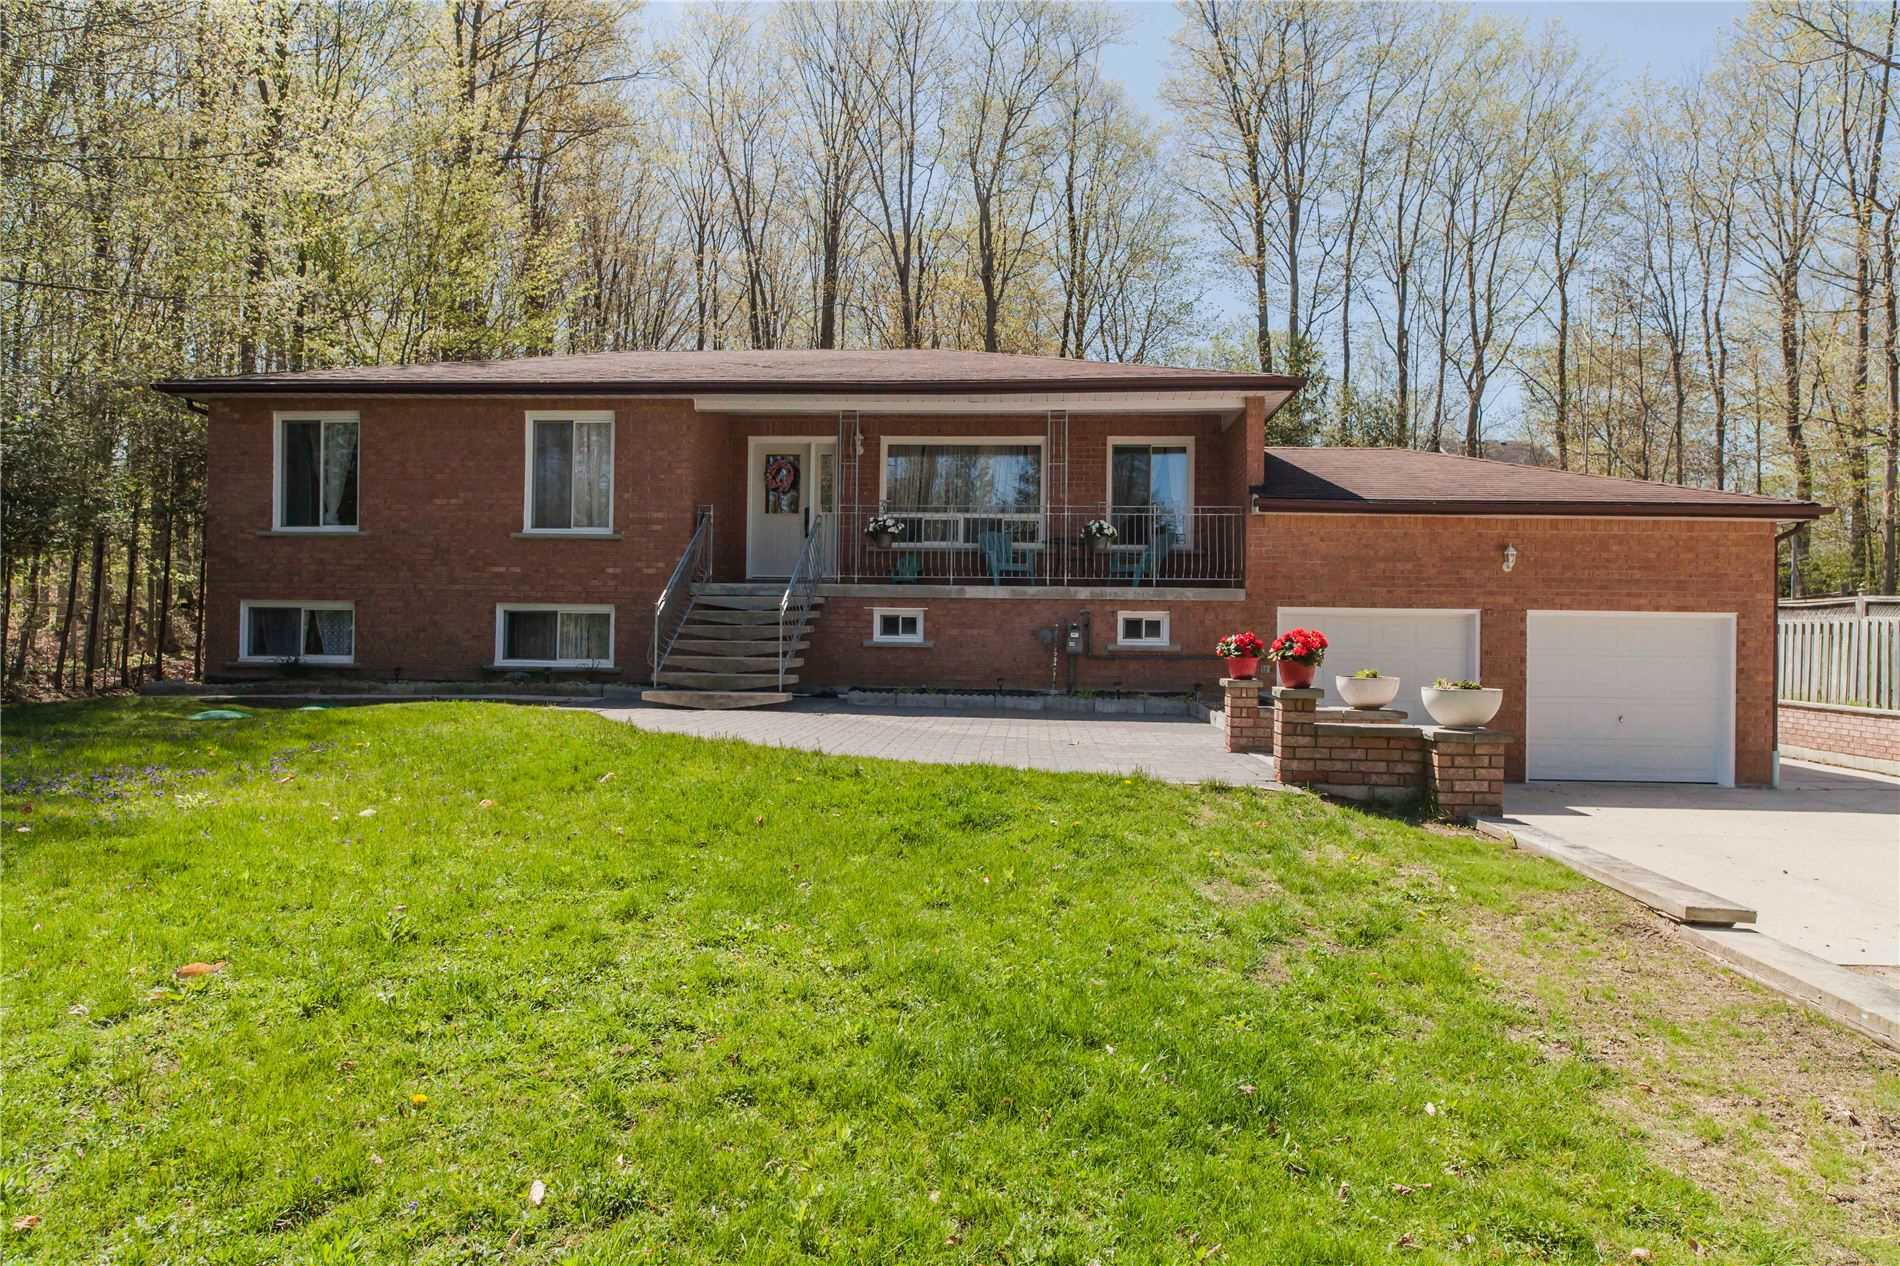 pictures of house for sale MLS: X4764925 located at 60 Birch St, South Bruce Peninsula N0H2G0